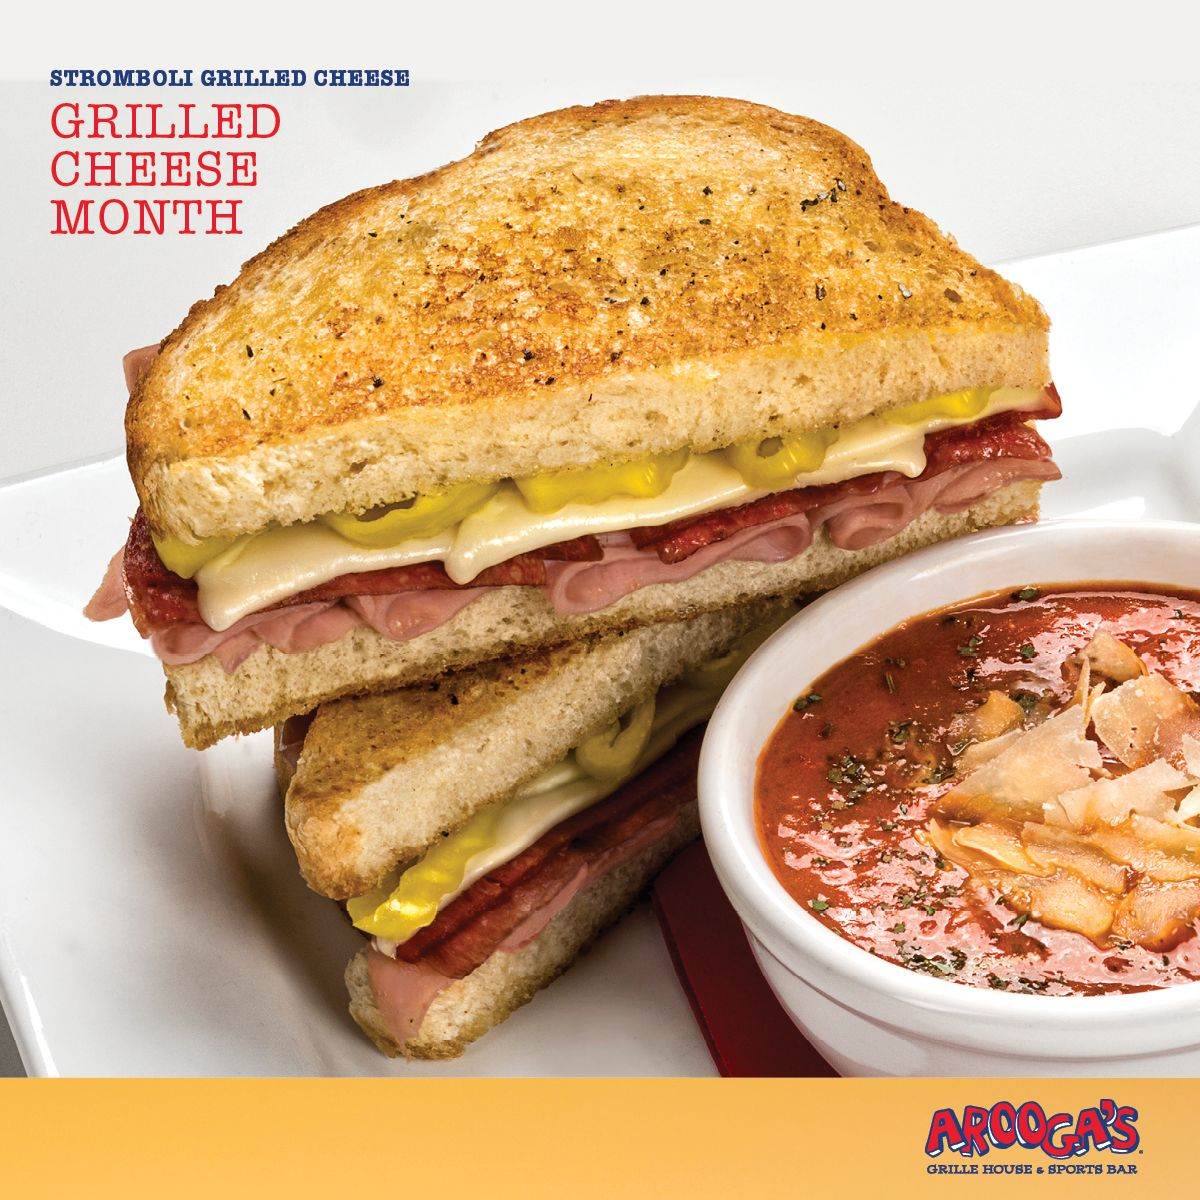 Half-Price Grilled Cheese Sandwiches at Arooga's April 12th For National Grilled Cheese Day